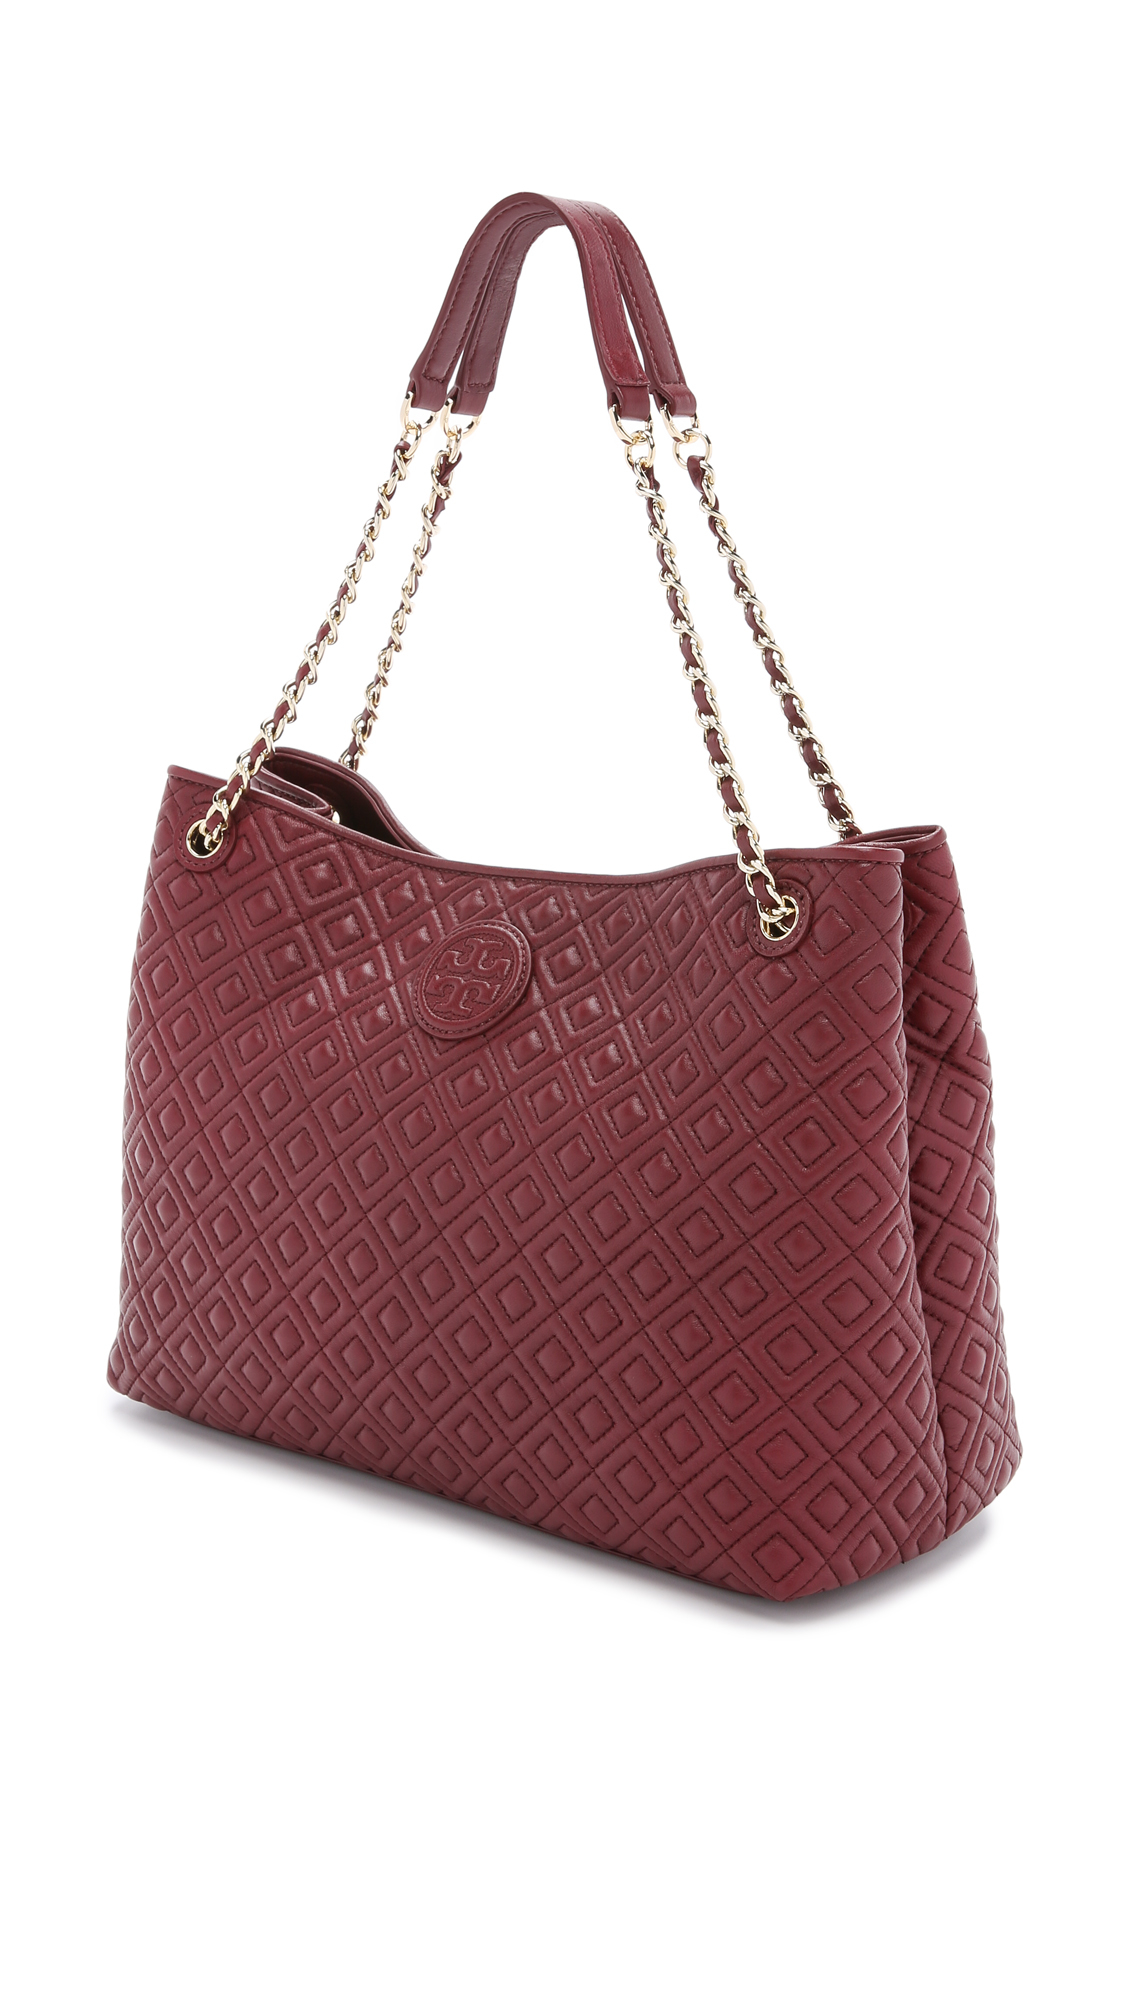 Tory burch Marion Quilted Shoulder Bag - Red Agate in Red | Lyst